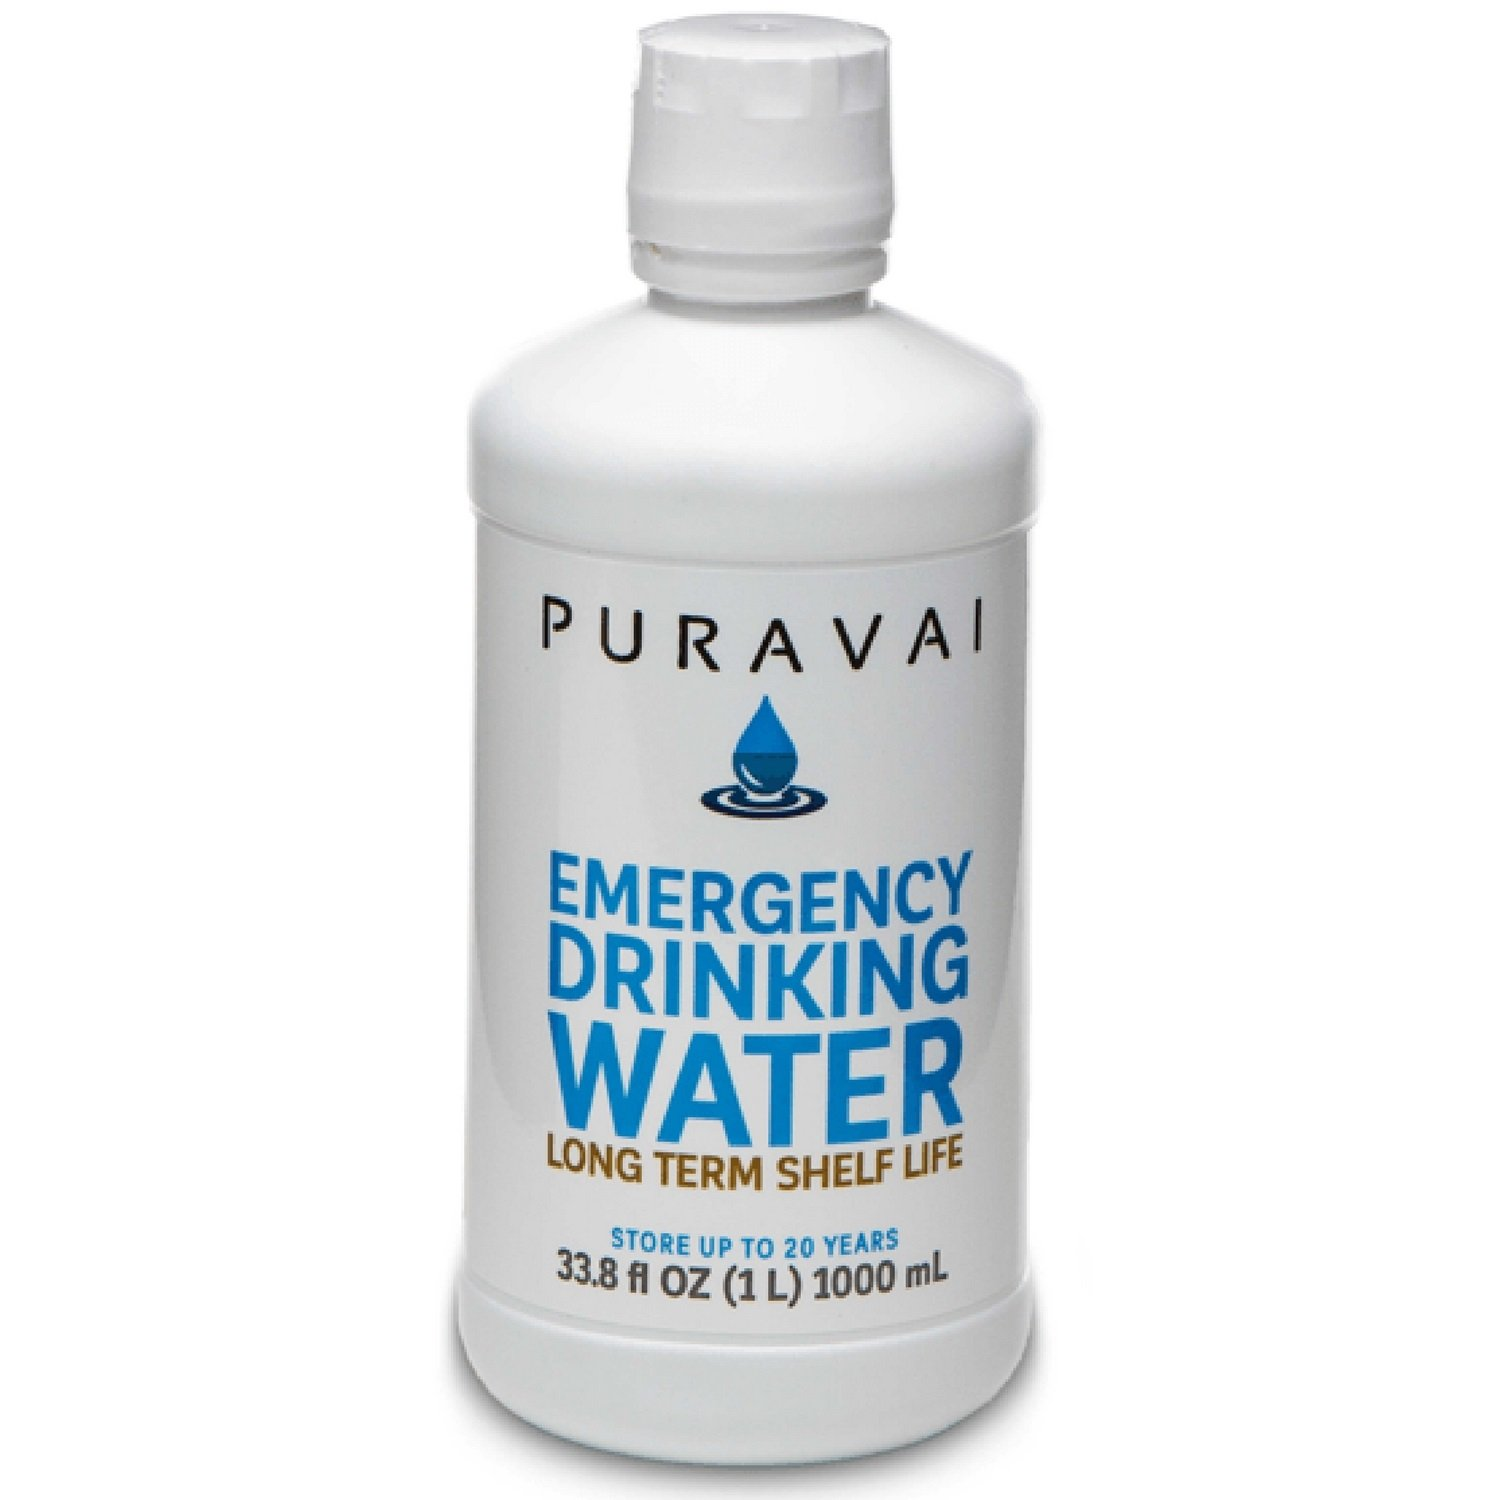 Puravai Emergency Drinking Water, 100% Bacteria Free Drinking Water, Purified Emergency Water, 20 Year Shelf Life, Long Term Water Storage, 12-Pack of 1 Liter Bottles, Sturdy Reusable Canteen Bottles by Puravai